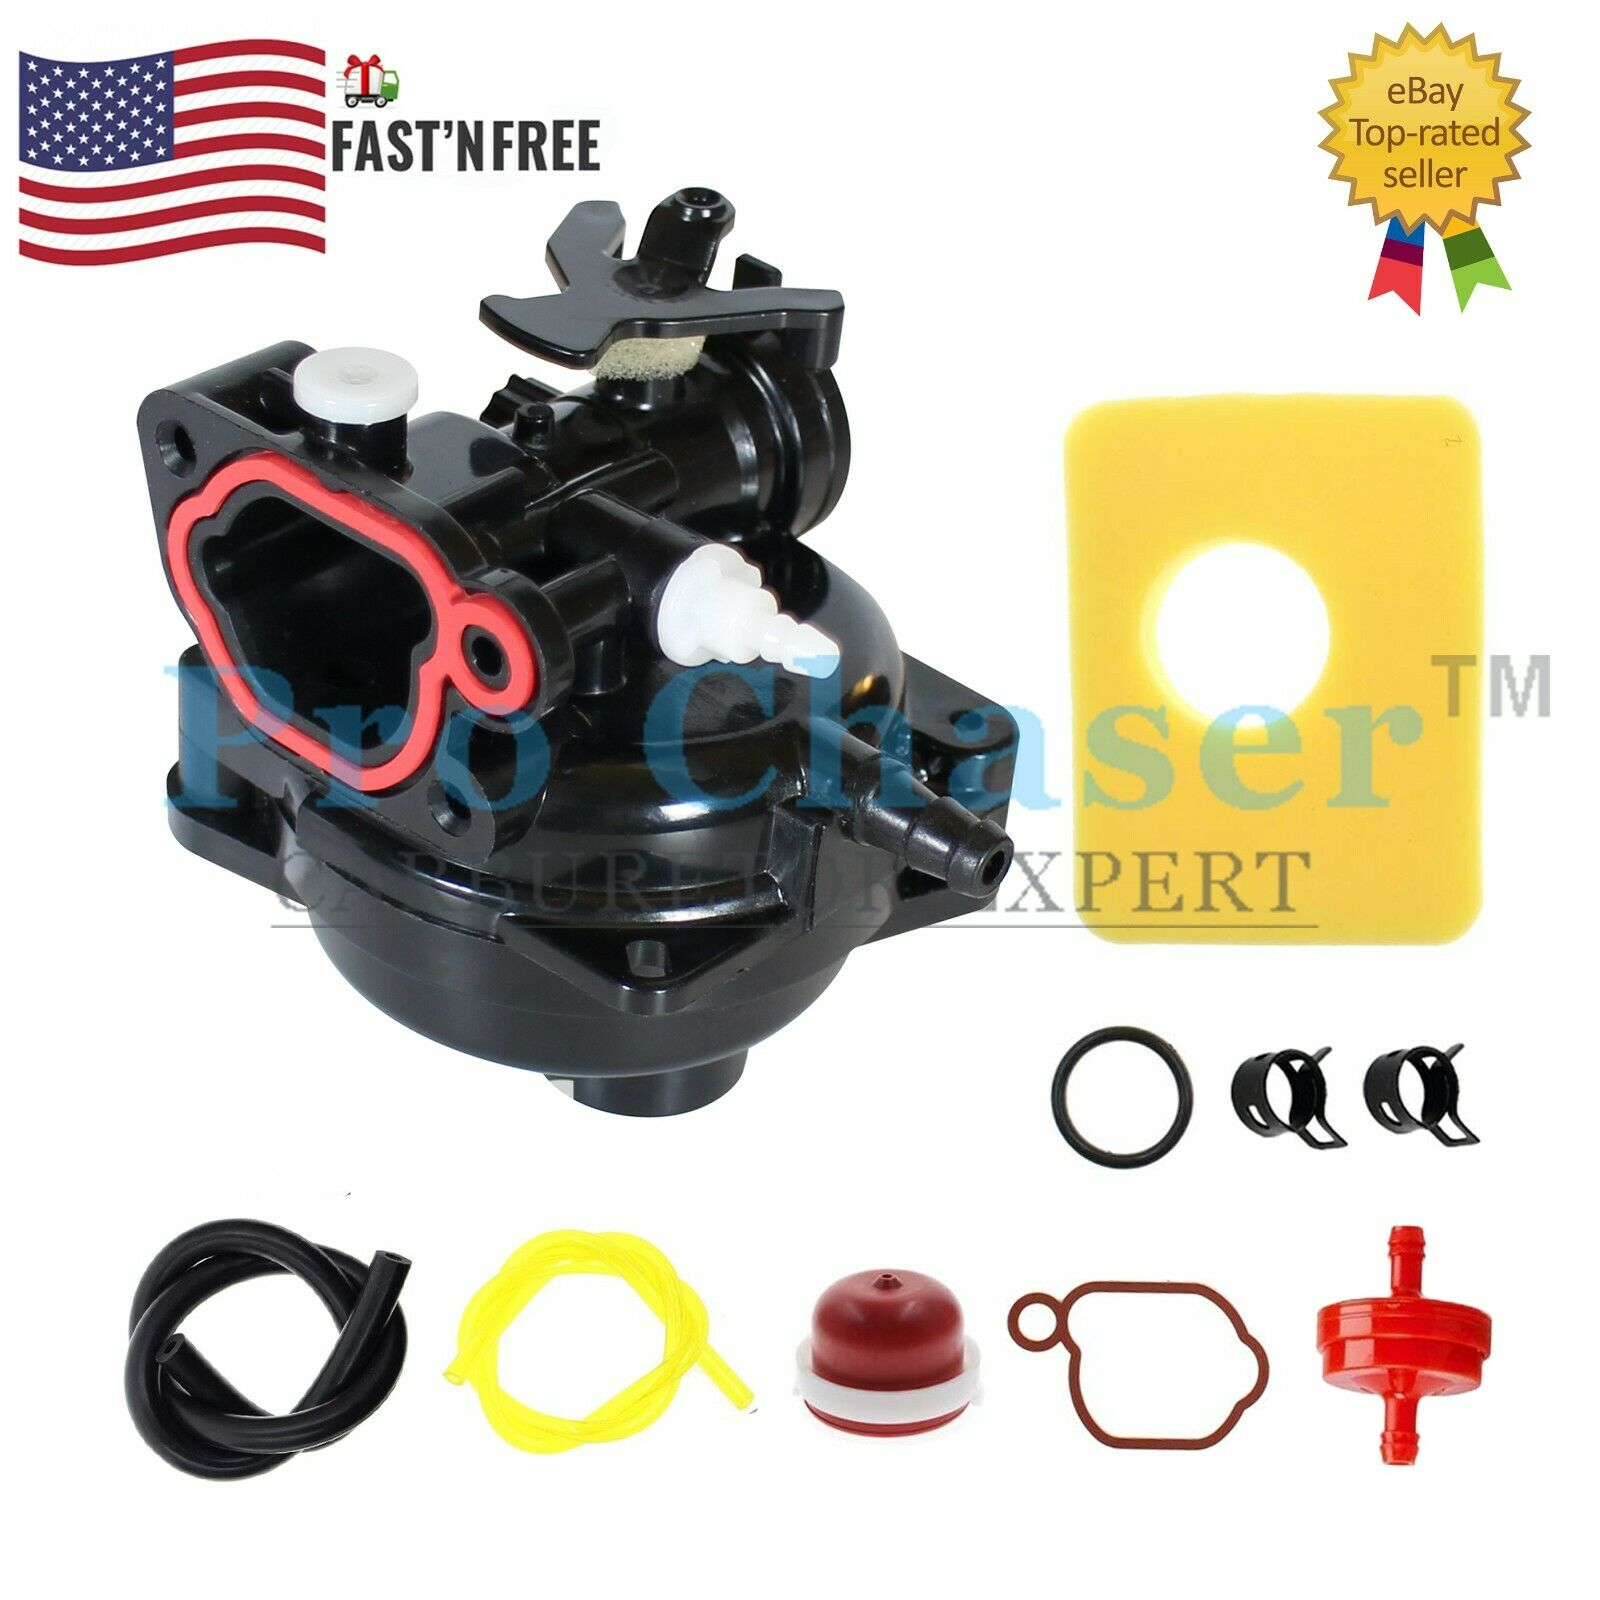 Carburetor Kit for Craftsman Model 247.374301 247374301 Lawn